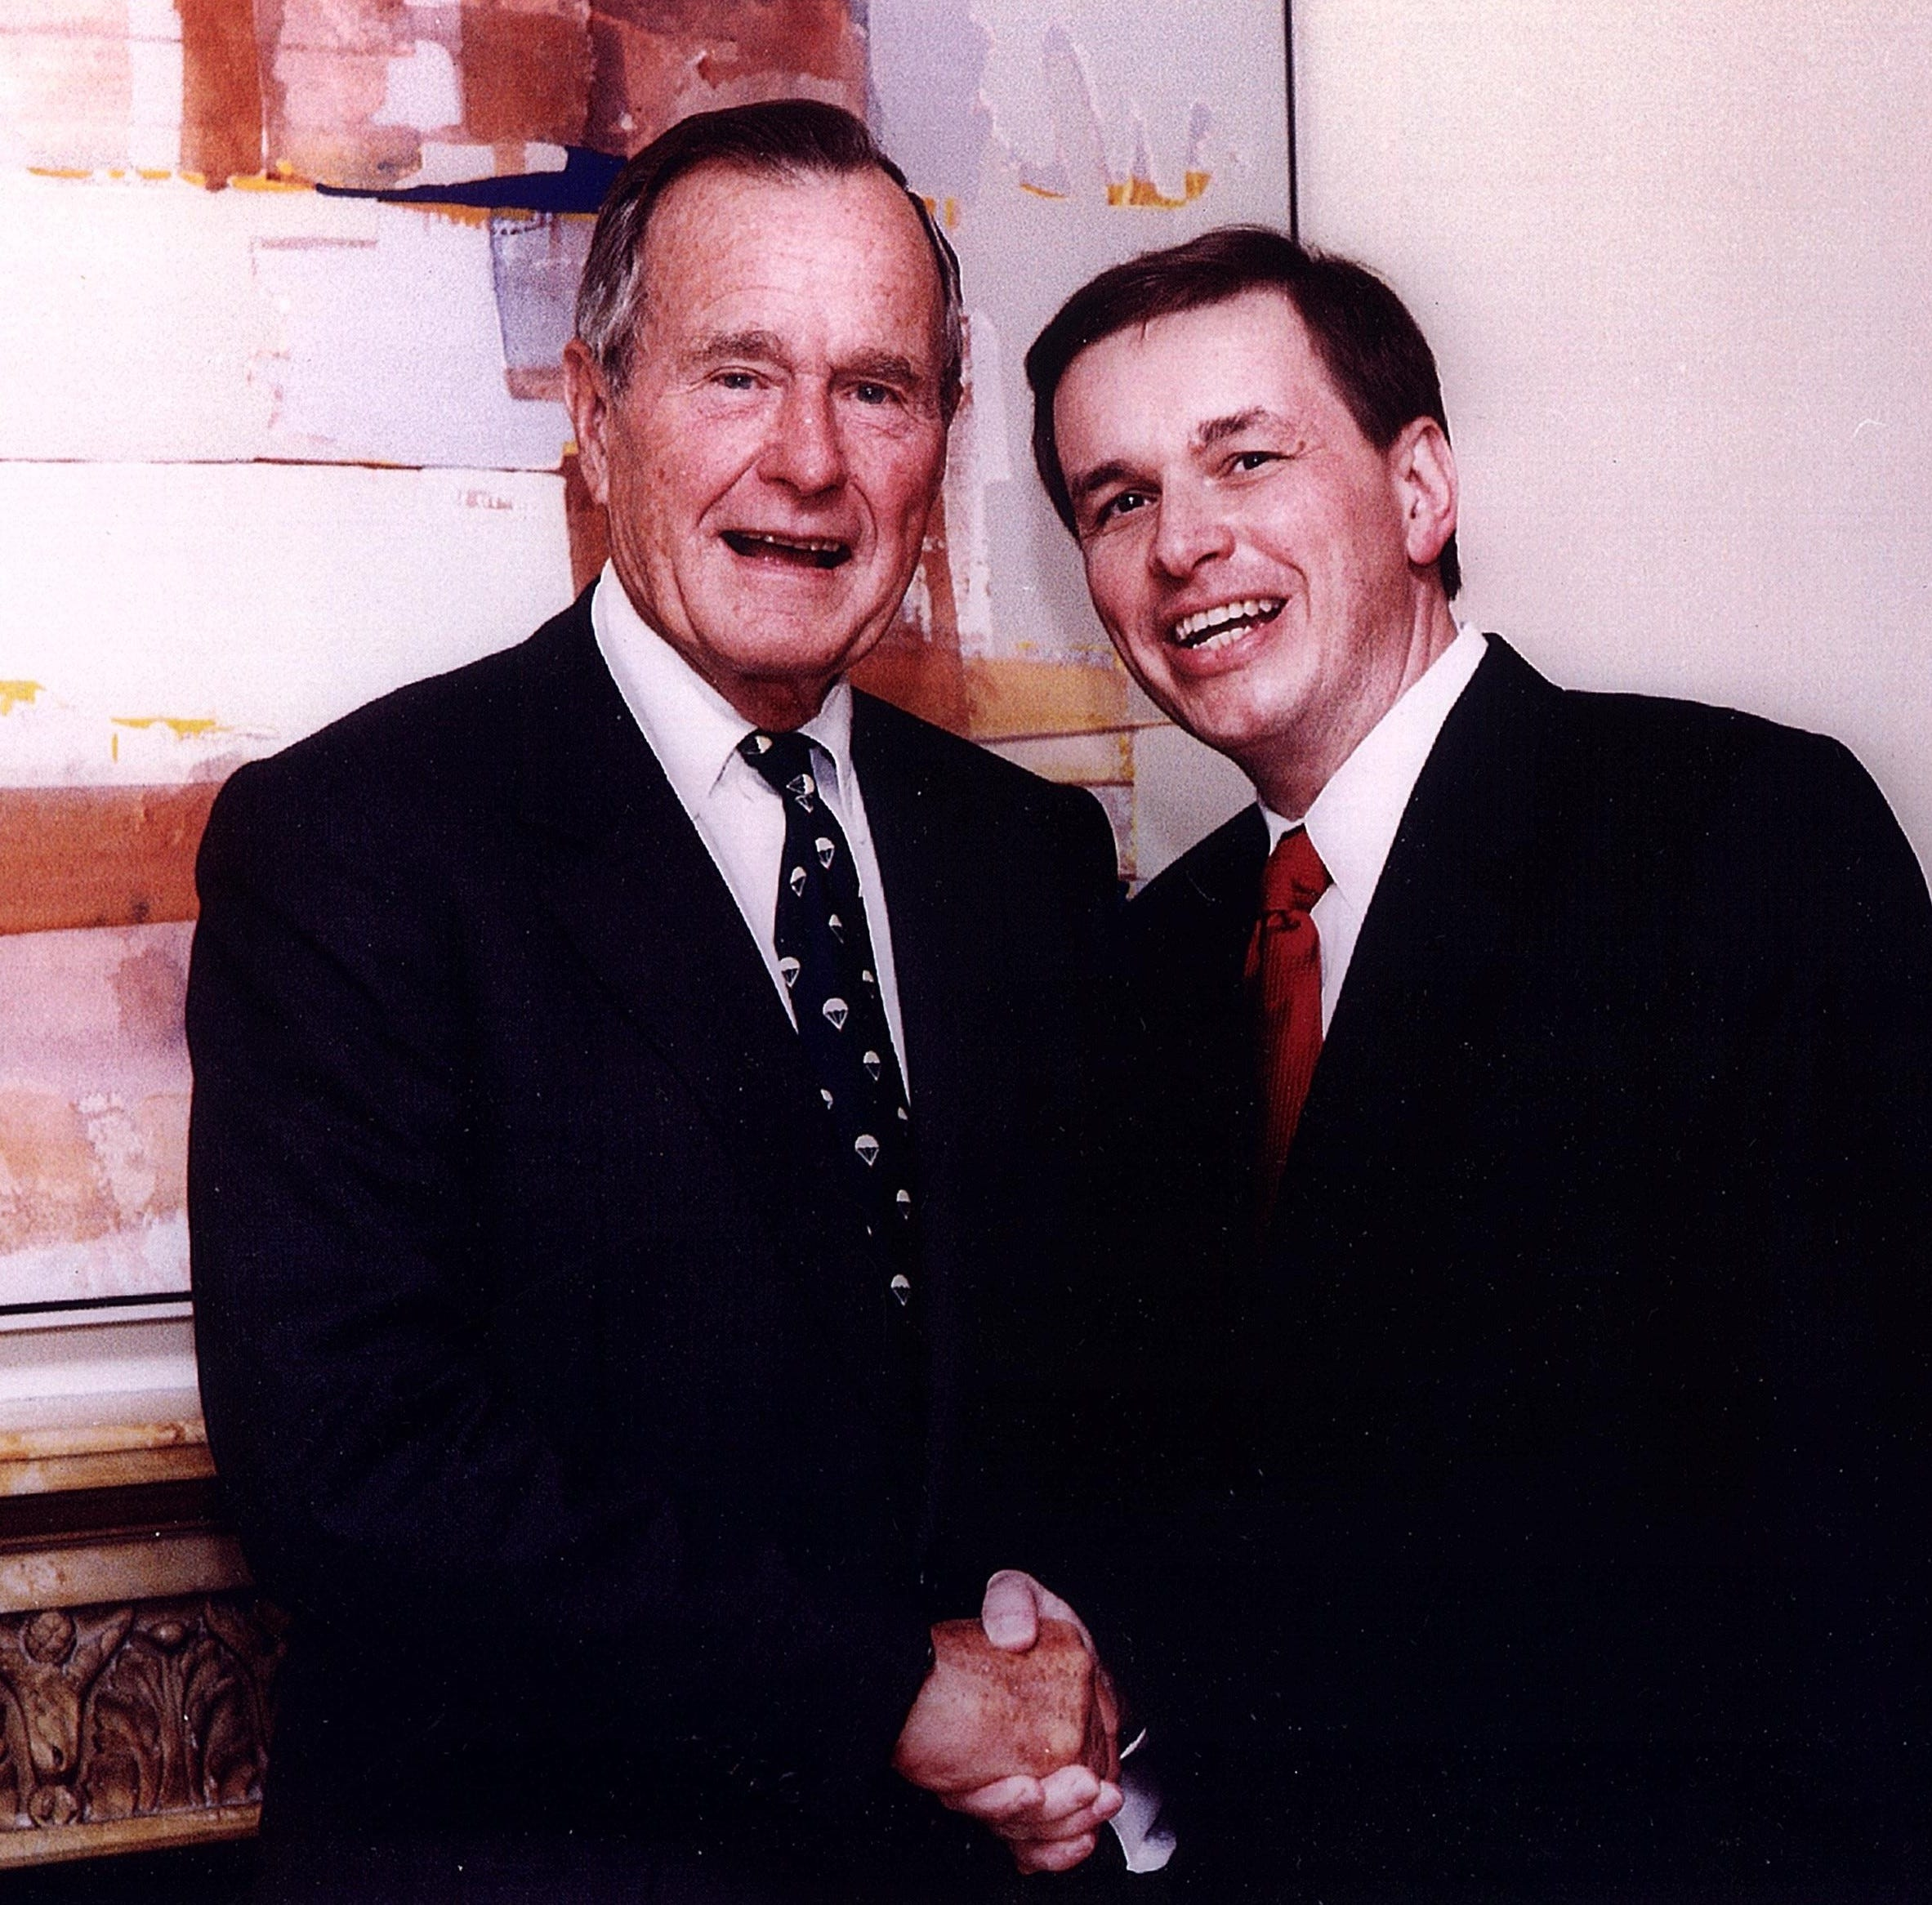 York-based presidential historian shares his interactions with President George H.W. Bush